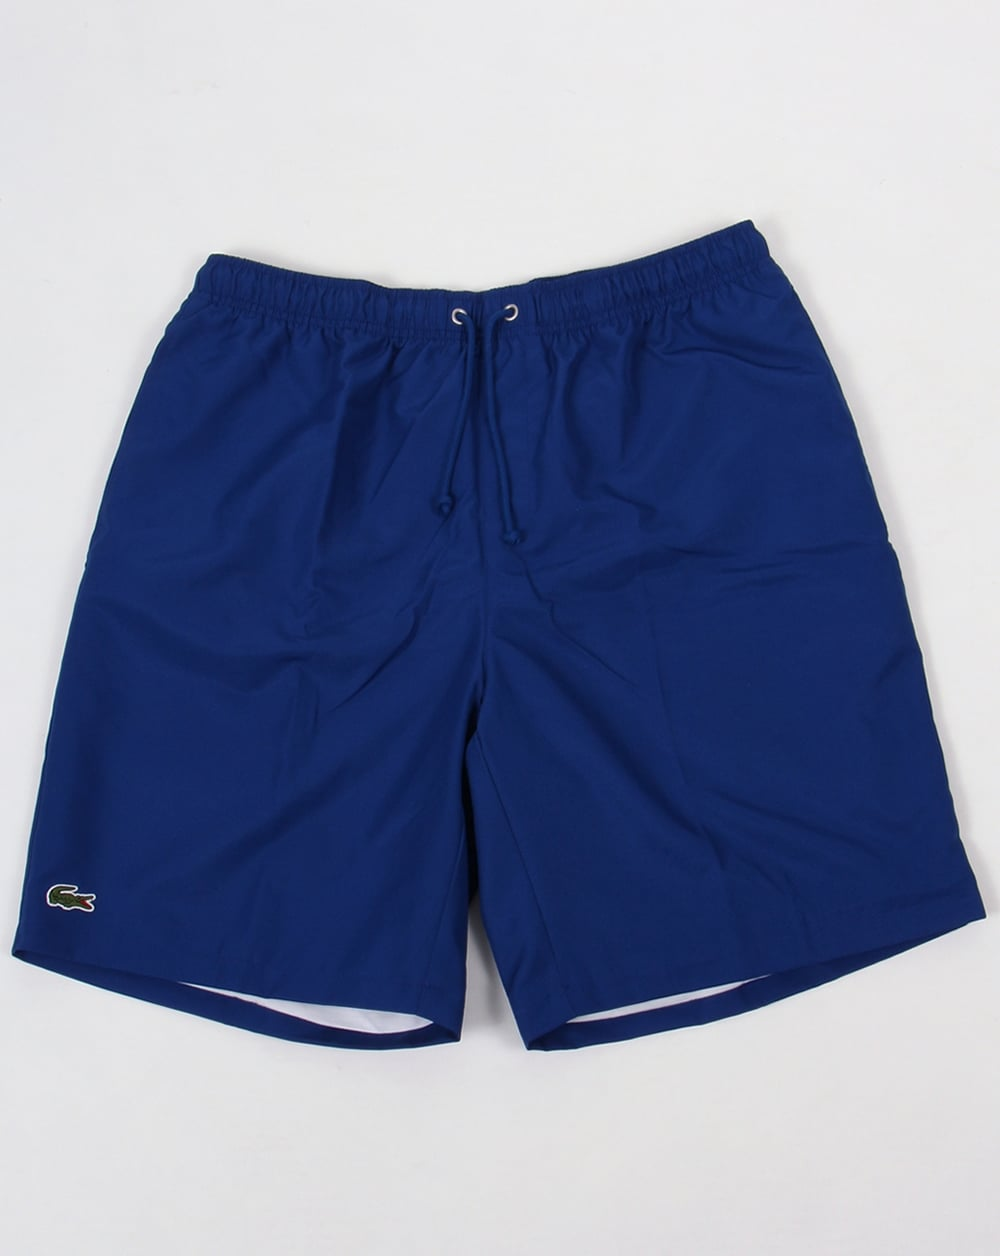 a77726dbf576 Lacoste Lacoste Sport Diamond Drawstring Shorts Royal Blue